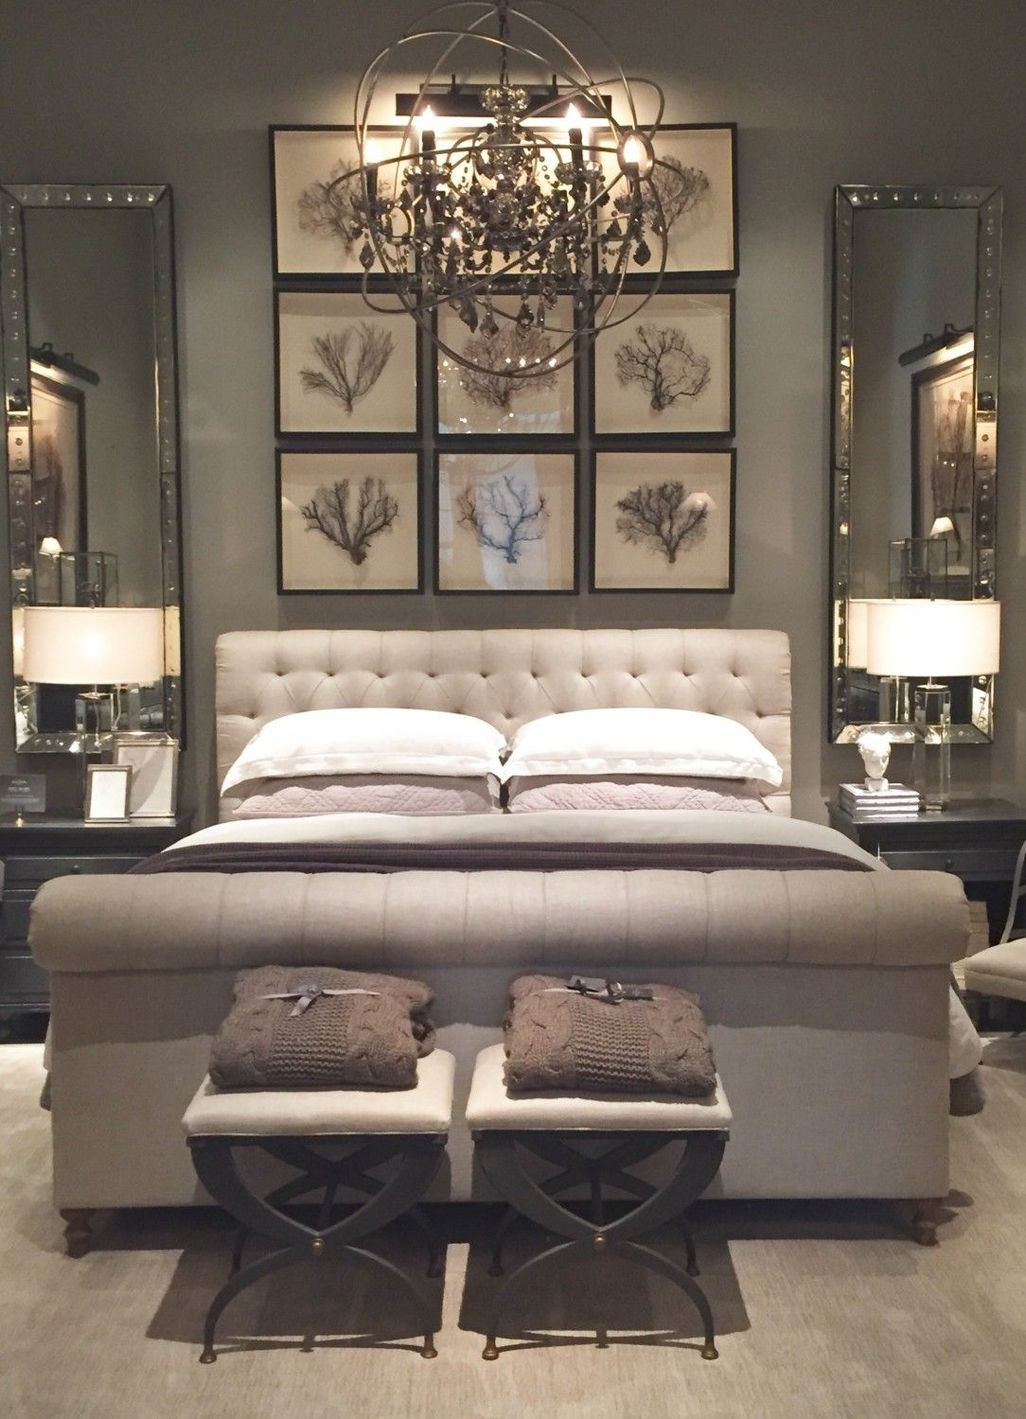 Bedroom Design Ideas On A Budget Fair 50 Brilliant Master Bedroom Design Ideas On A Budget  Master Design Ideas